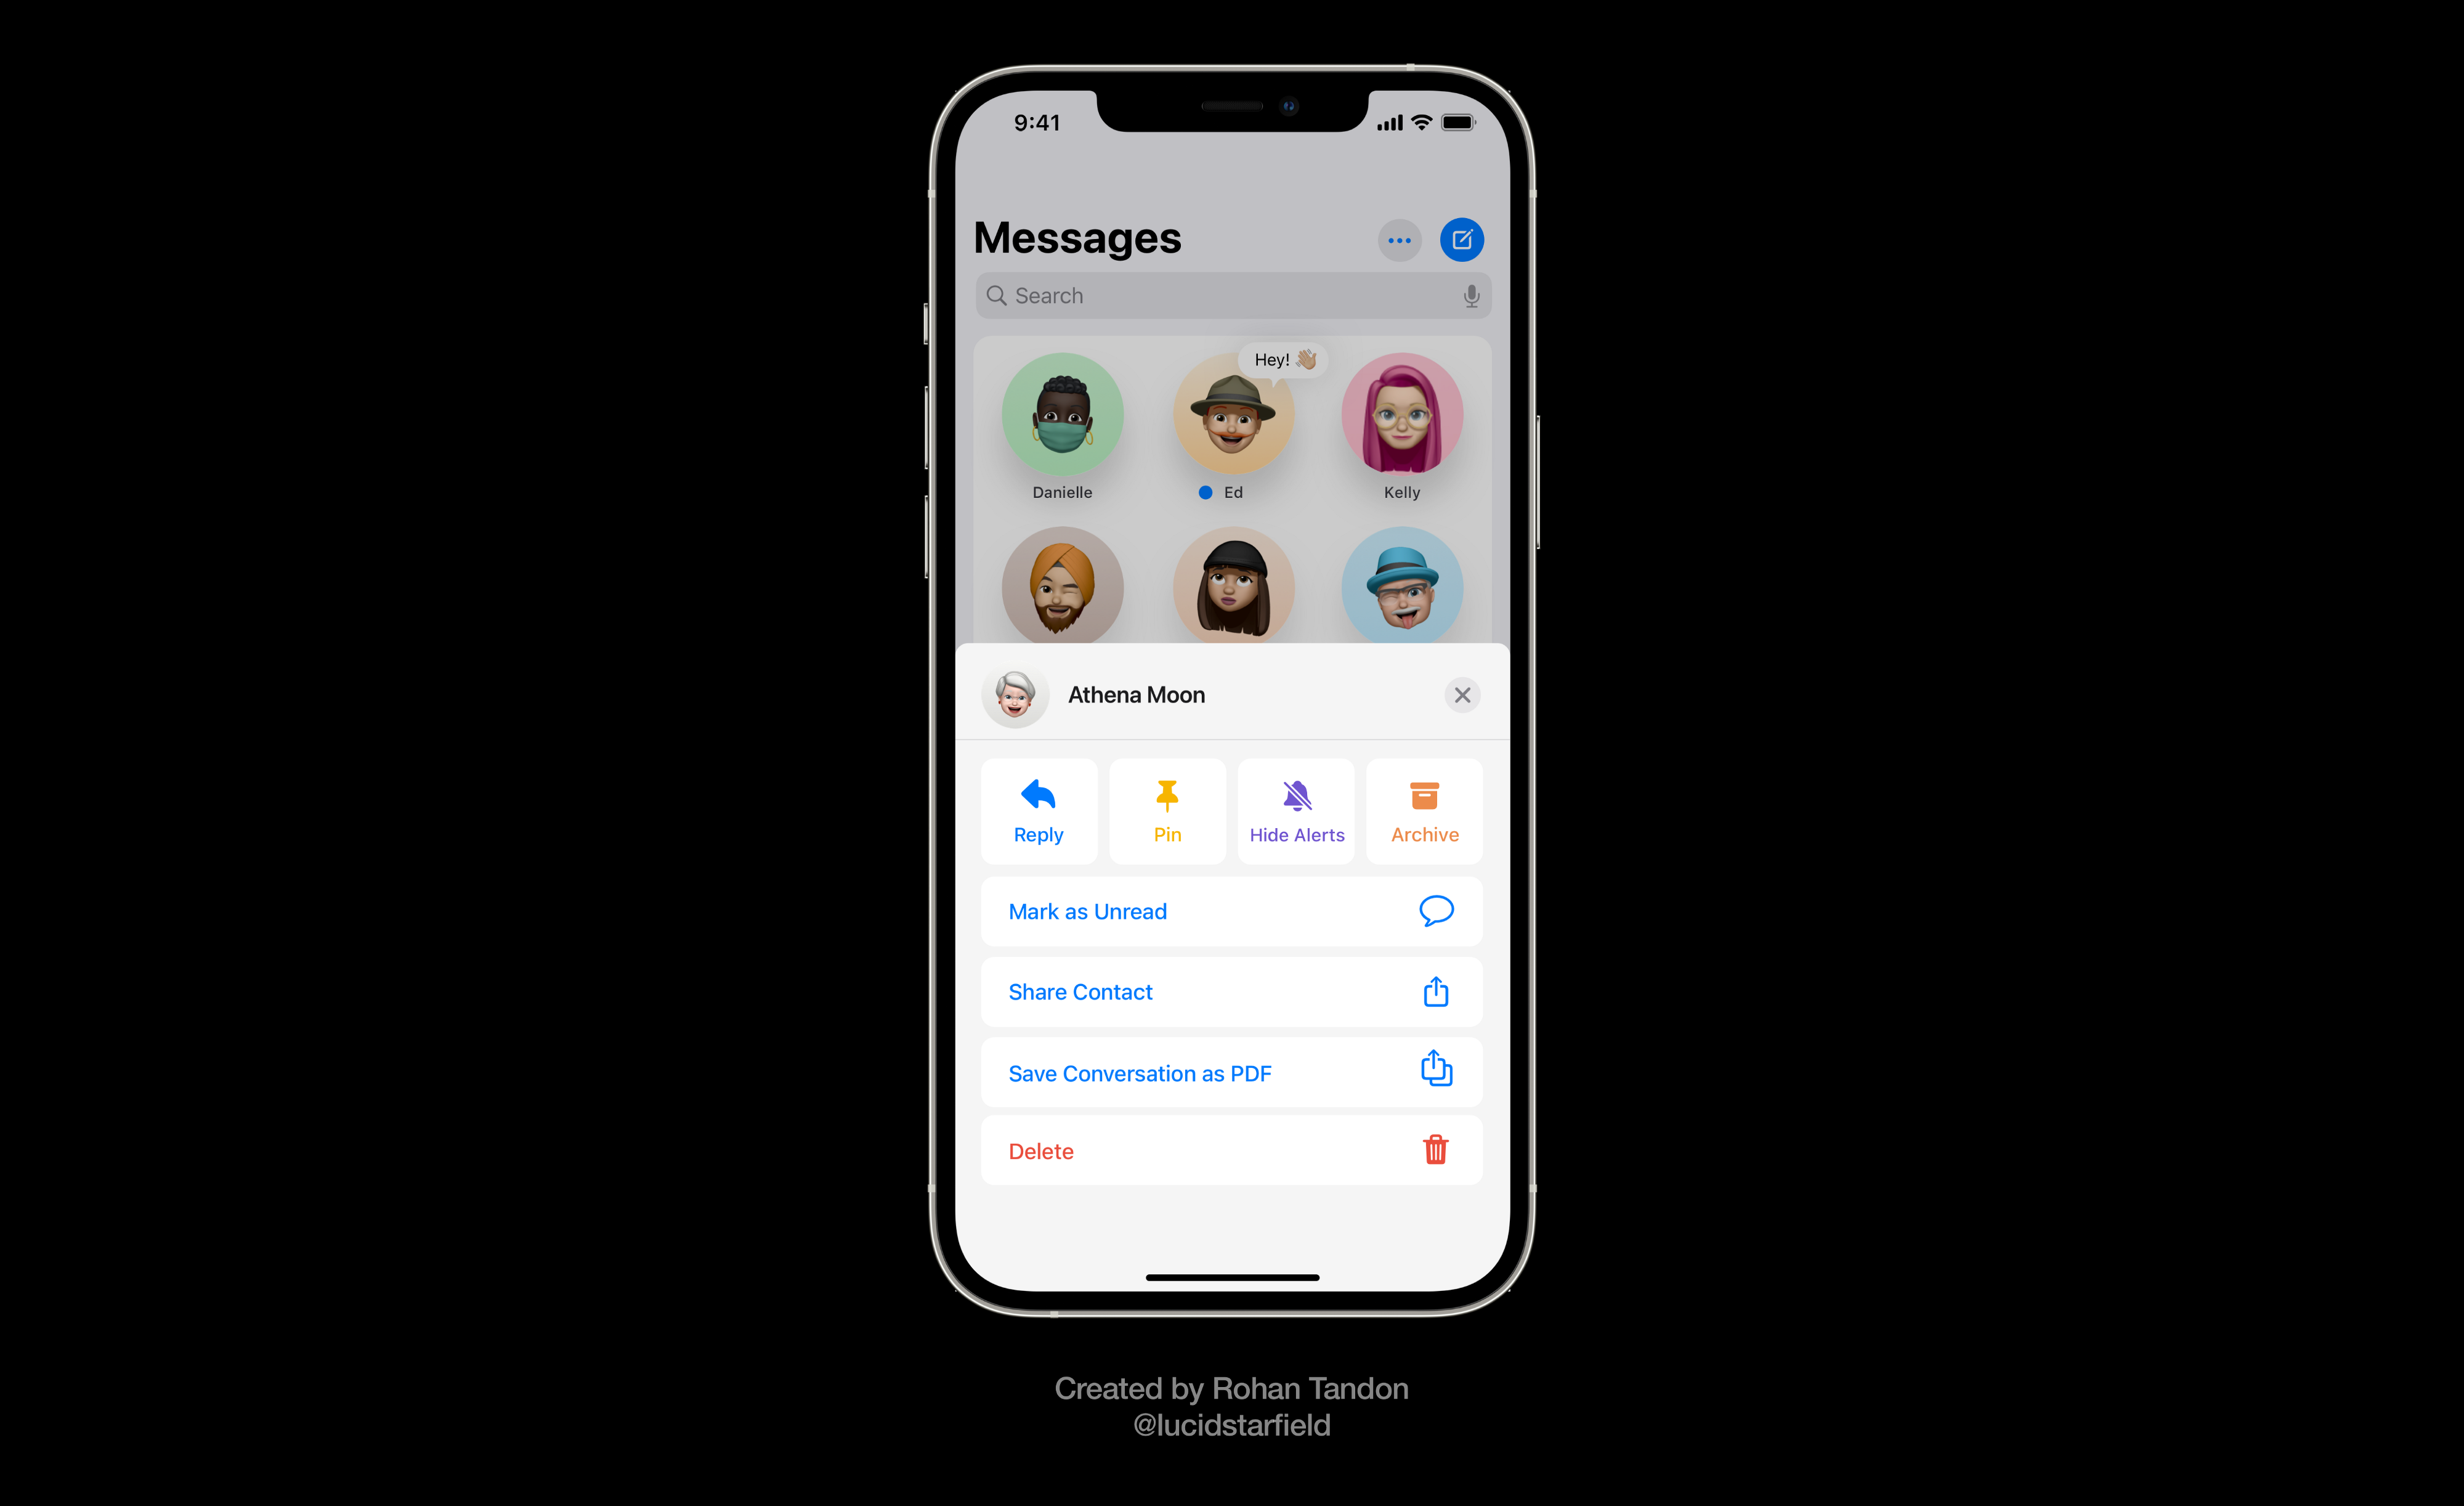 iOS 15 Aurora imagines an all-new menu in Messages